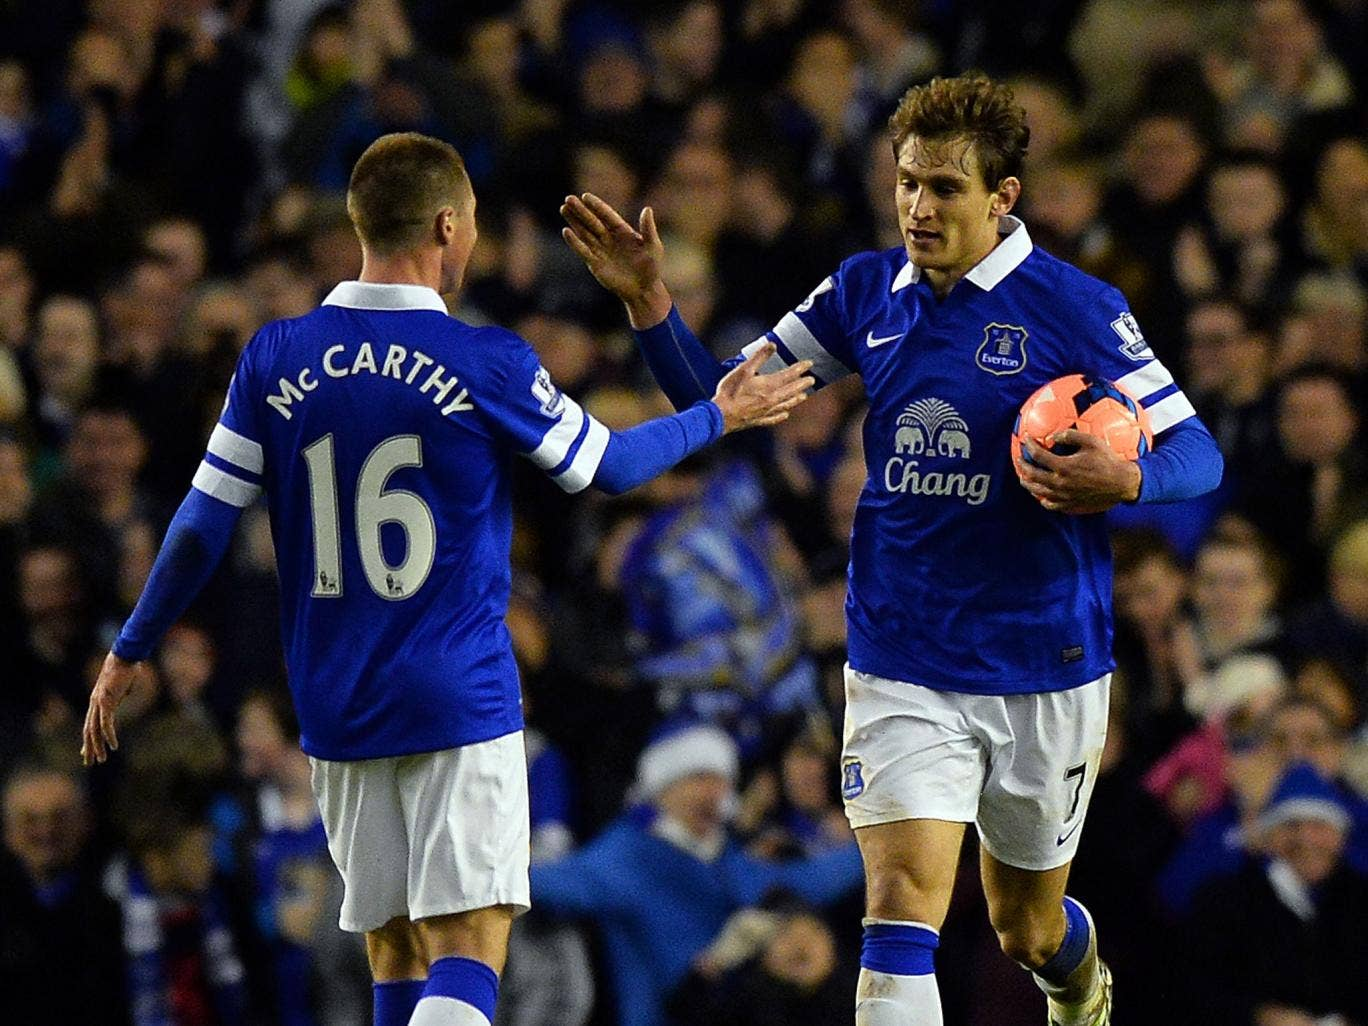 Everton striker Nikica Jelavic celebrates with James McCarthy after scoring in the 4-0 FA Cup win over QPR